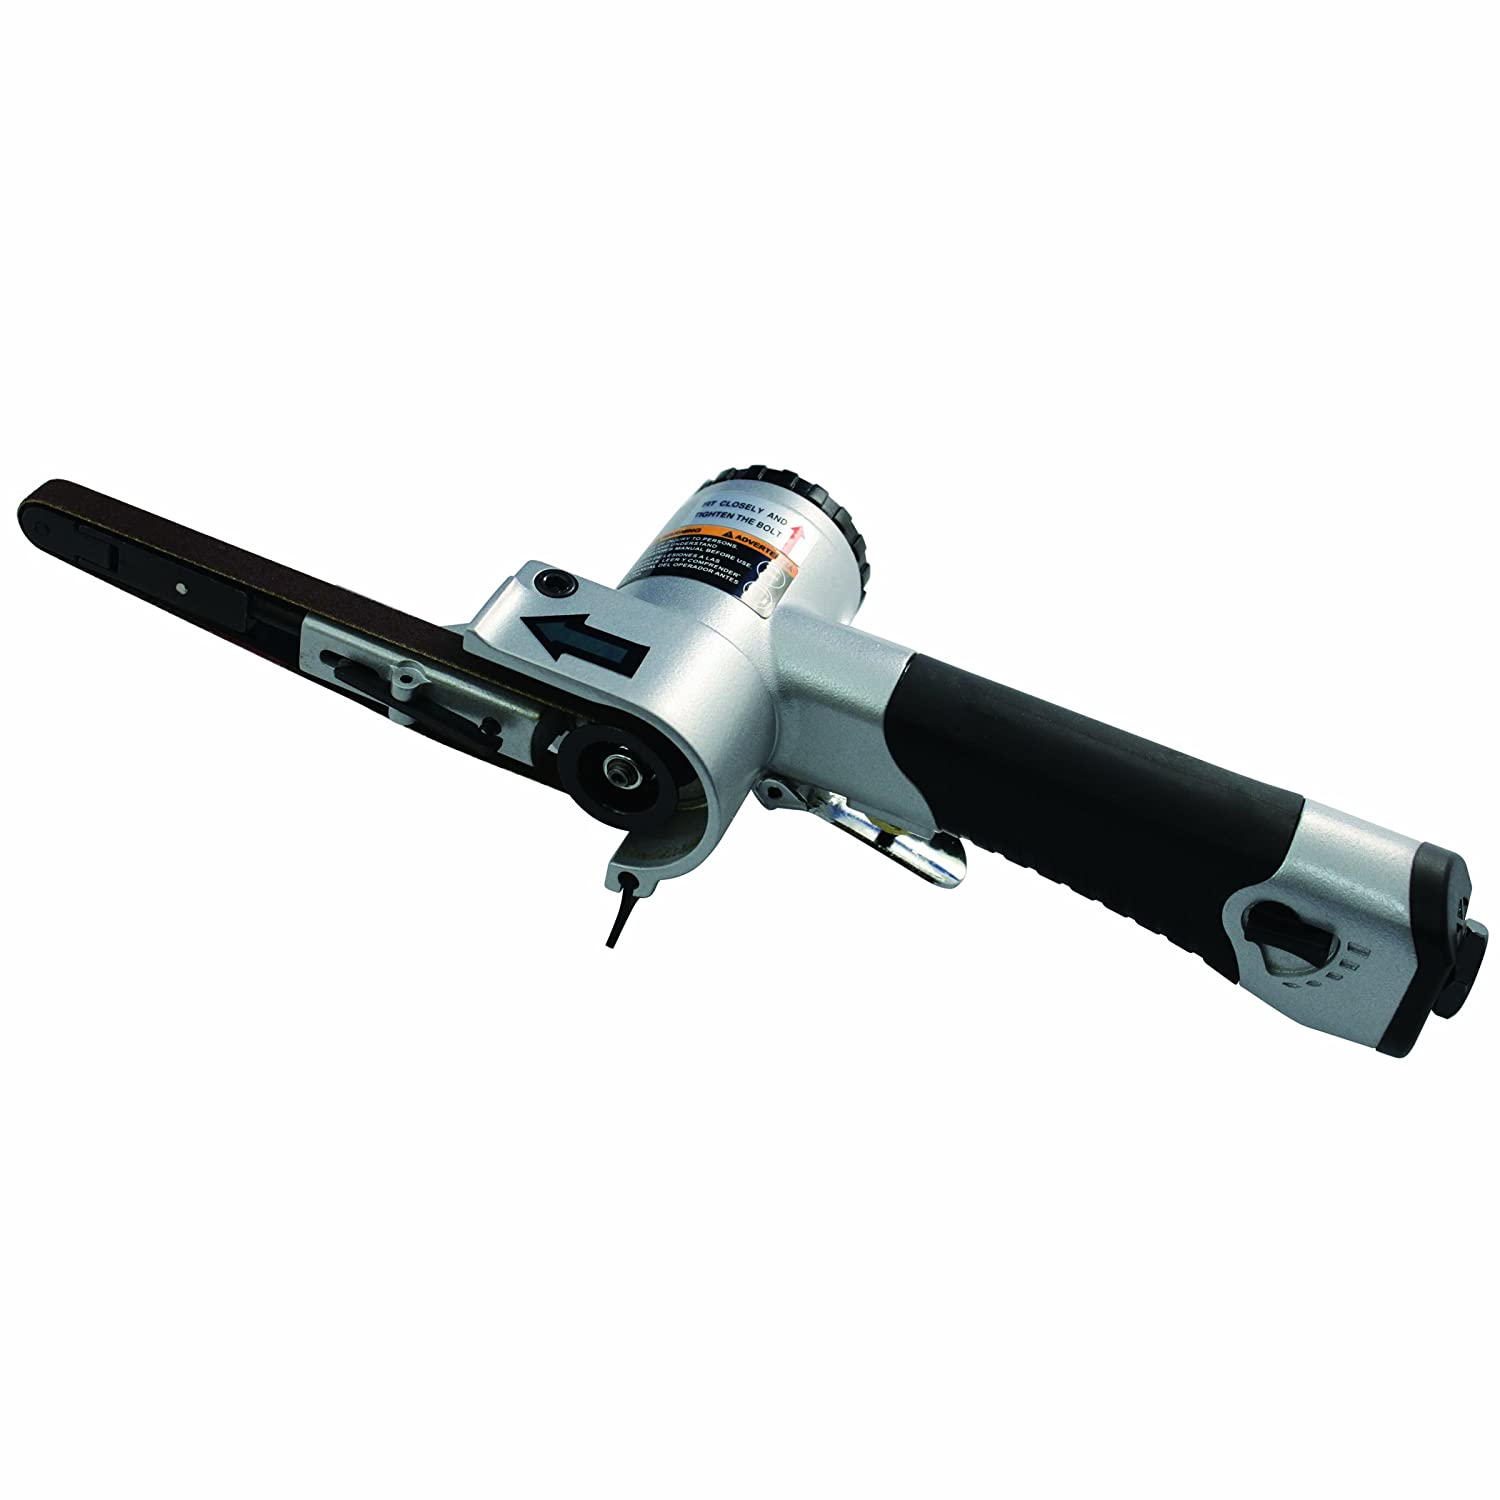 Astro Pneumatic Tool APT-3036 Finger Sanders product image 1